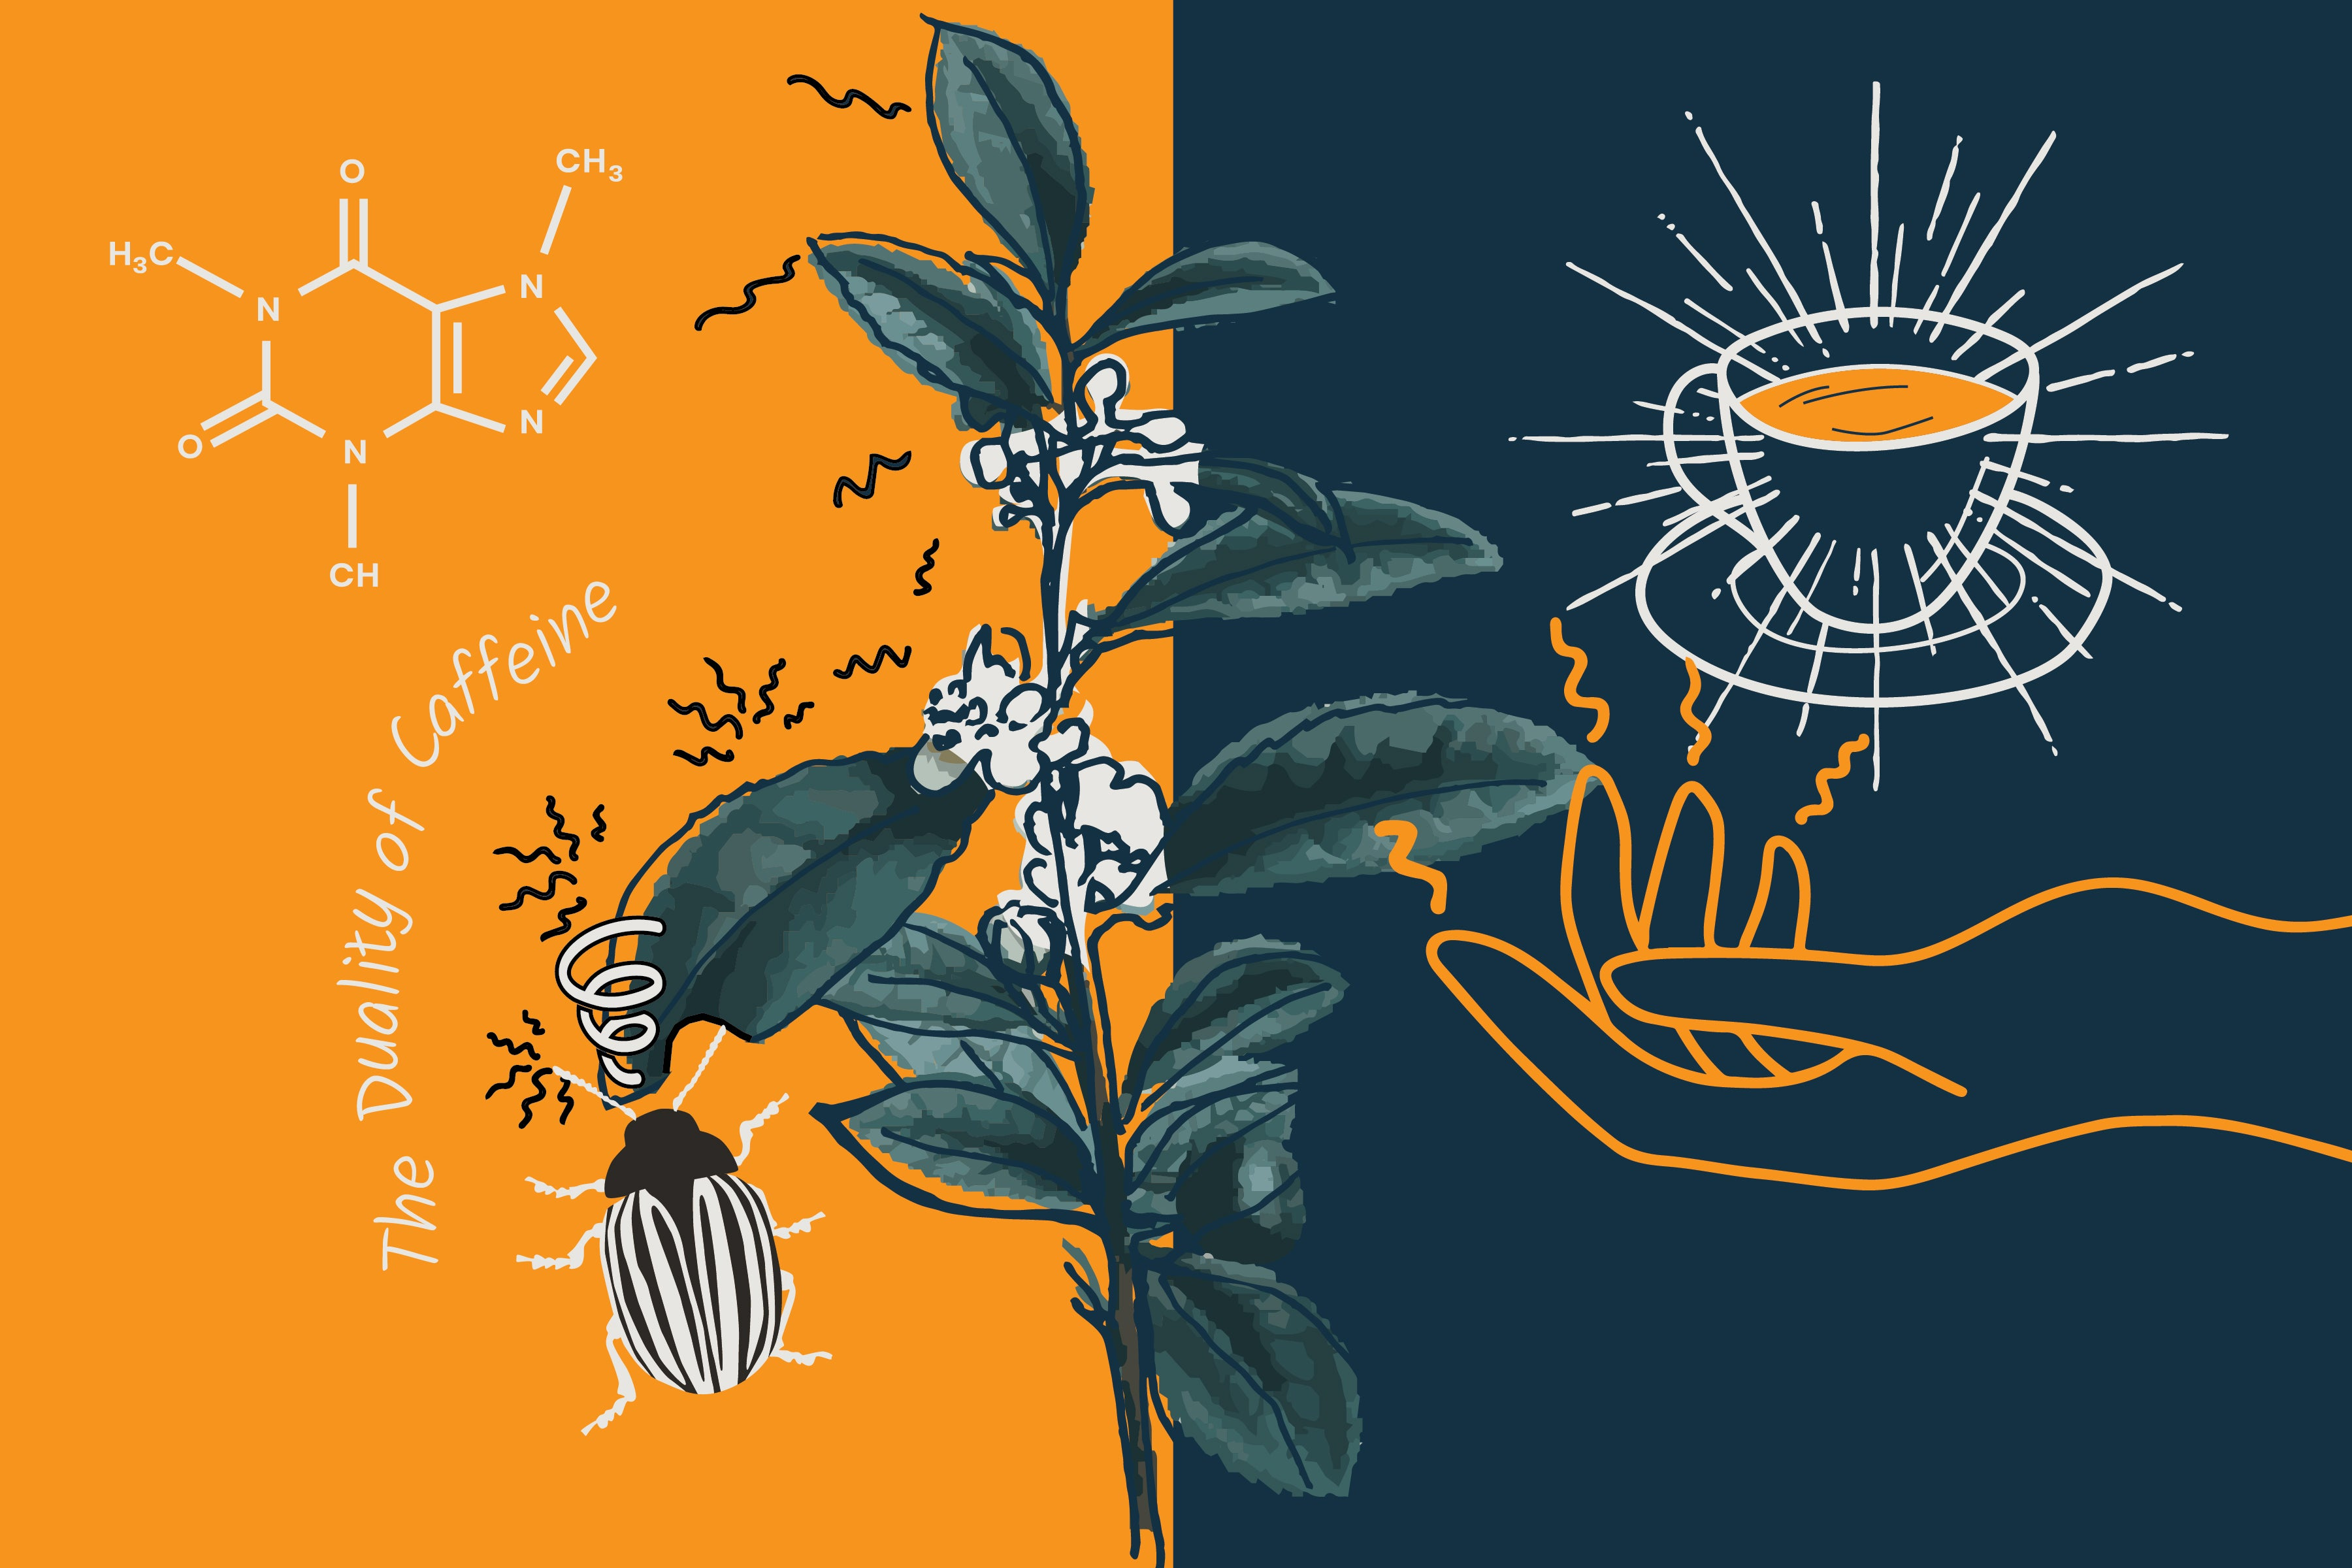 Illustration showing Camellia Sinensis plant and the effect of caffeine on bugs and humans